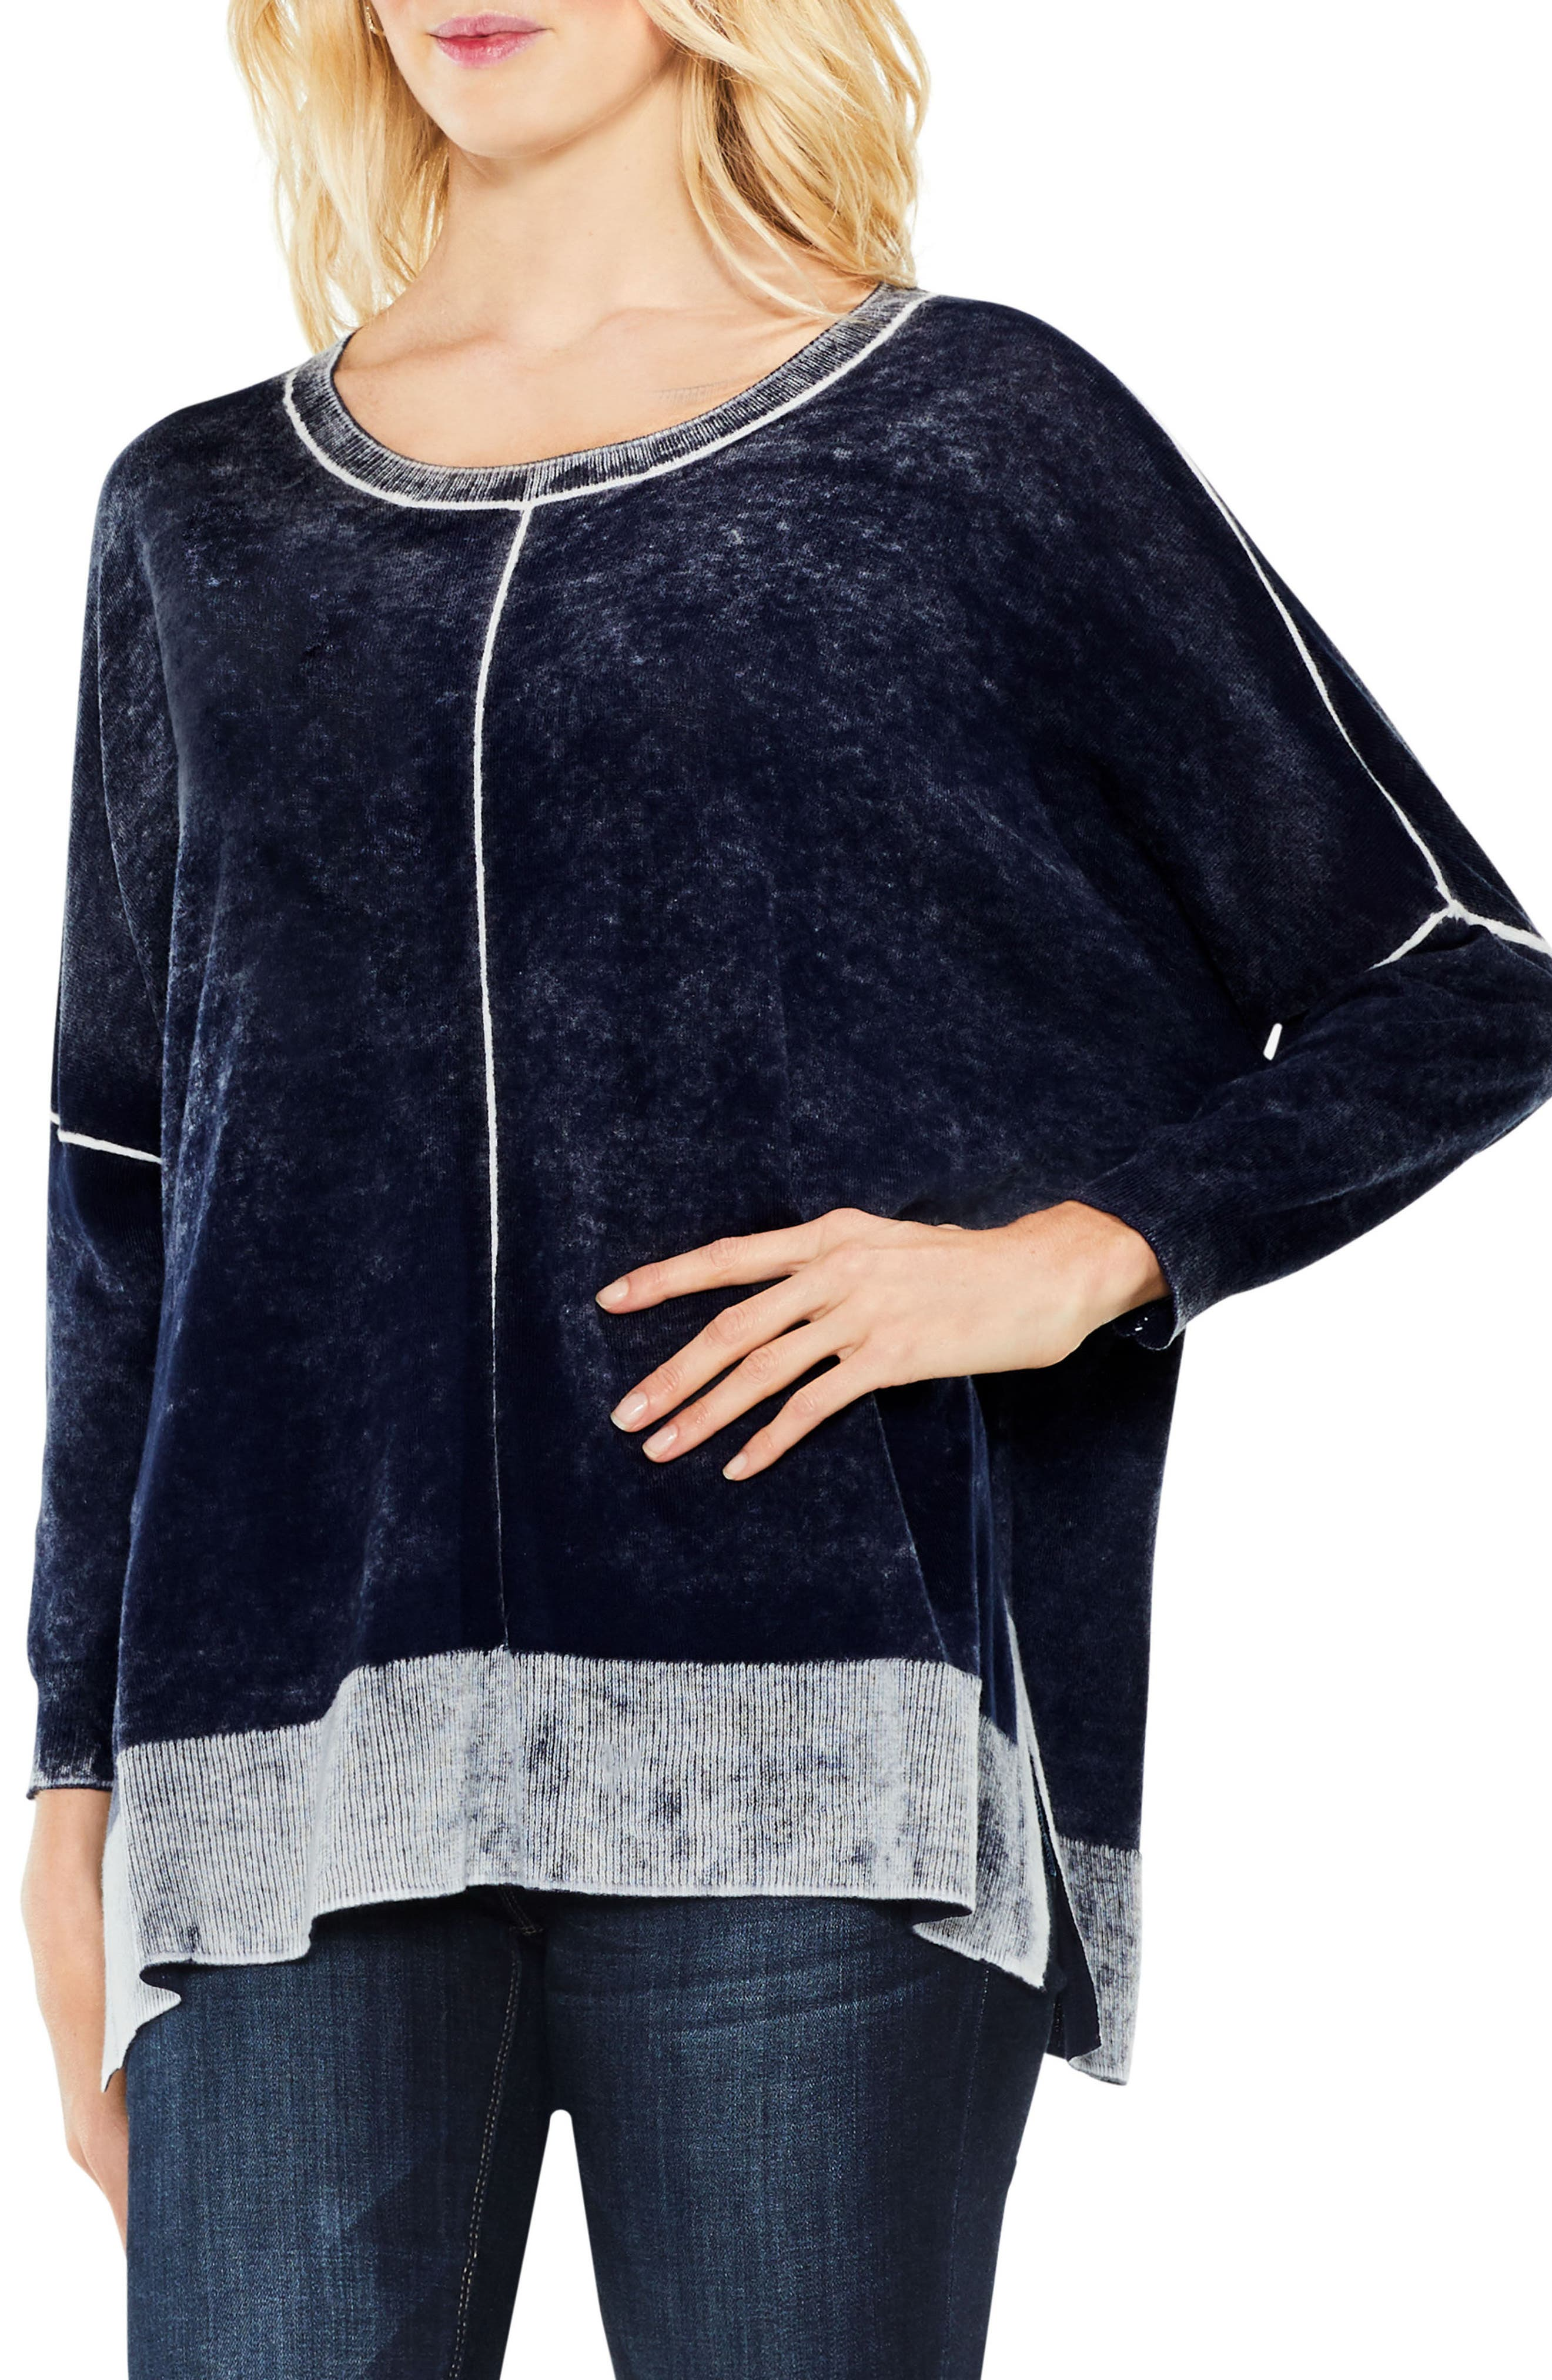 Main Image - Two by Vince Camuto Inside Out Printed Sweater